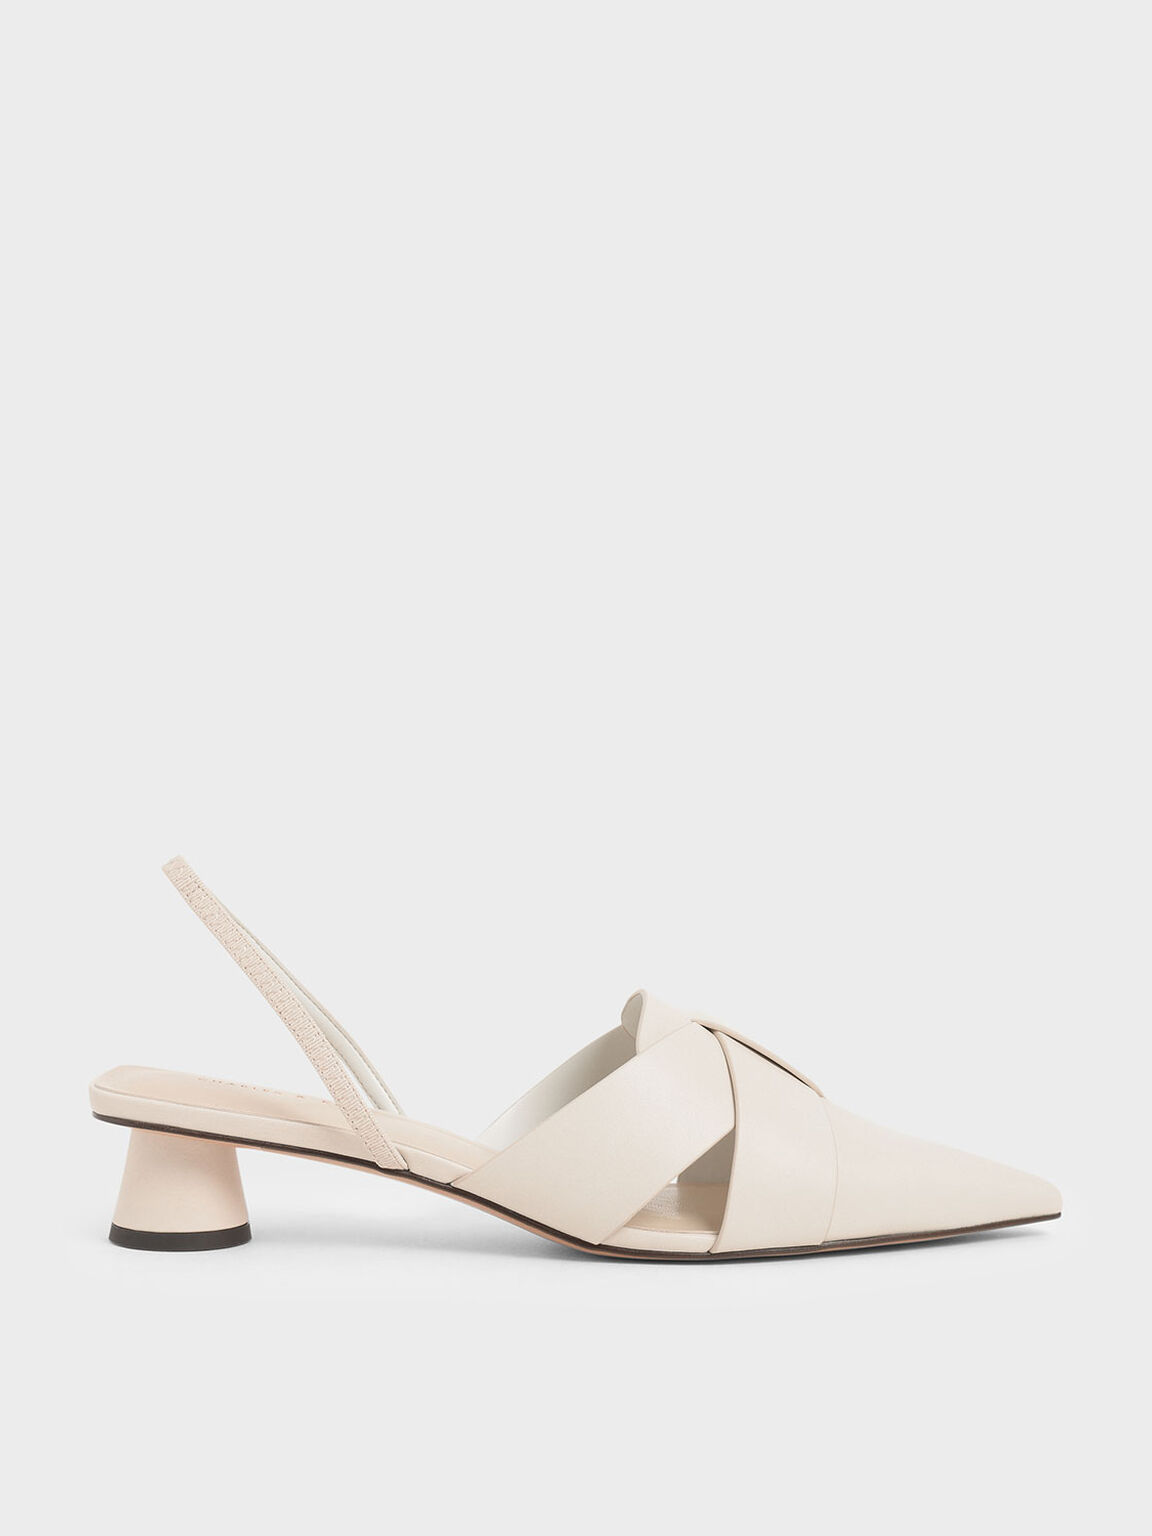 Cylindrical Heel Slingback Pumps, Chalk, hi-res